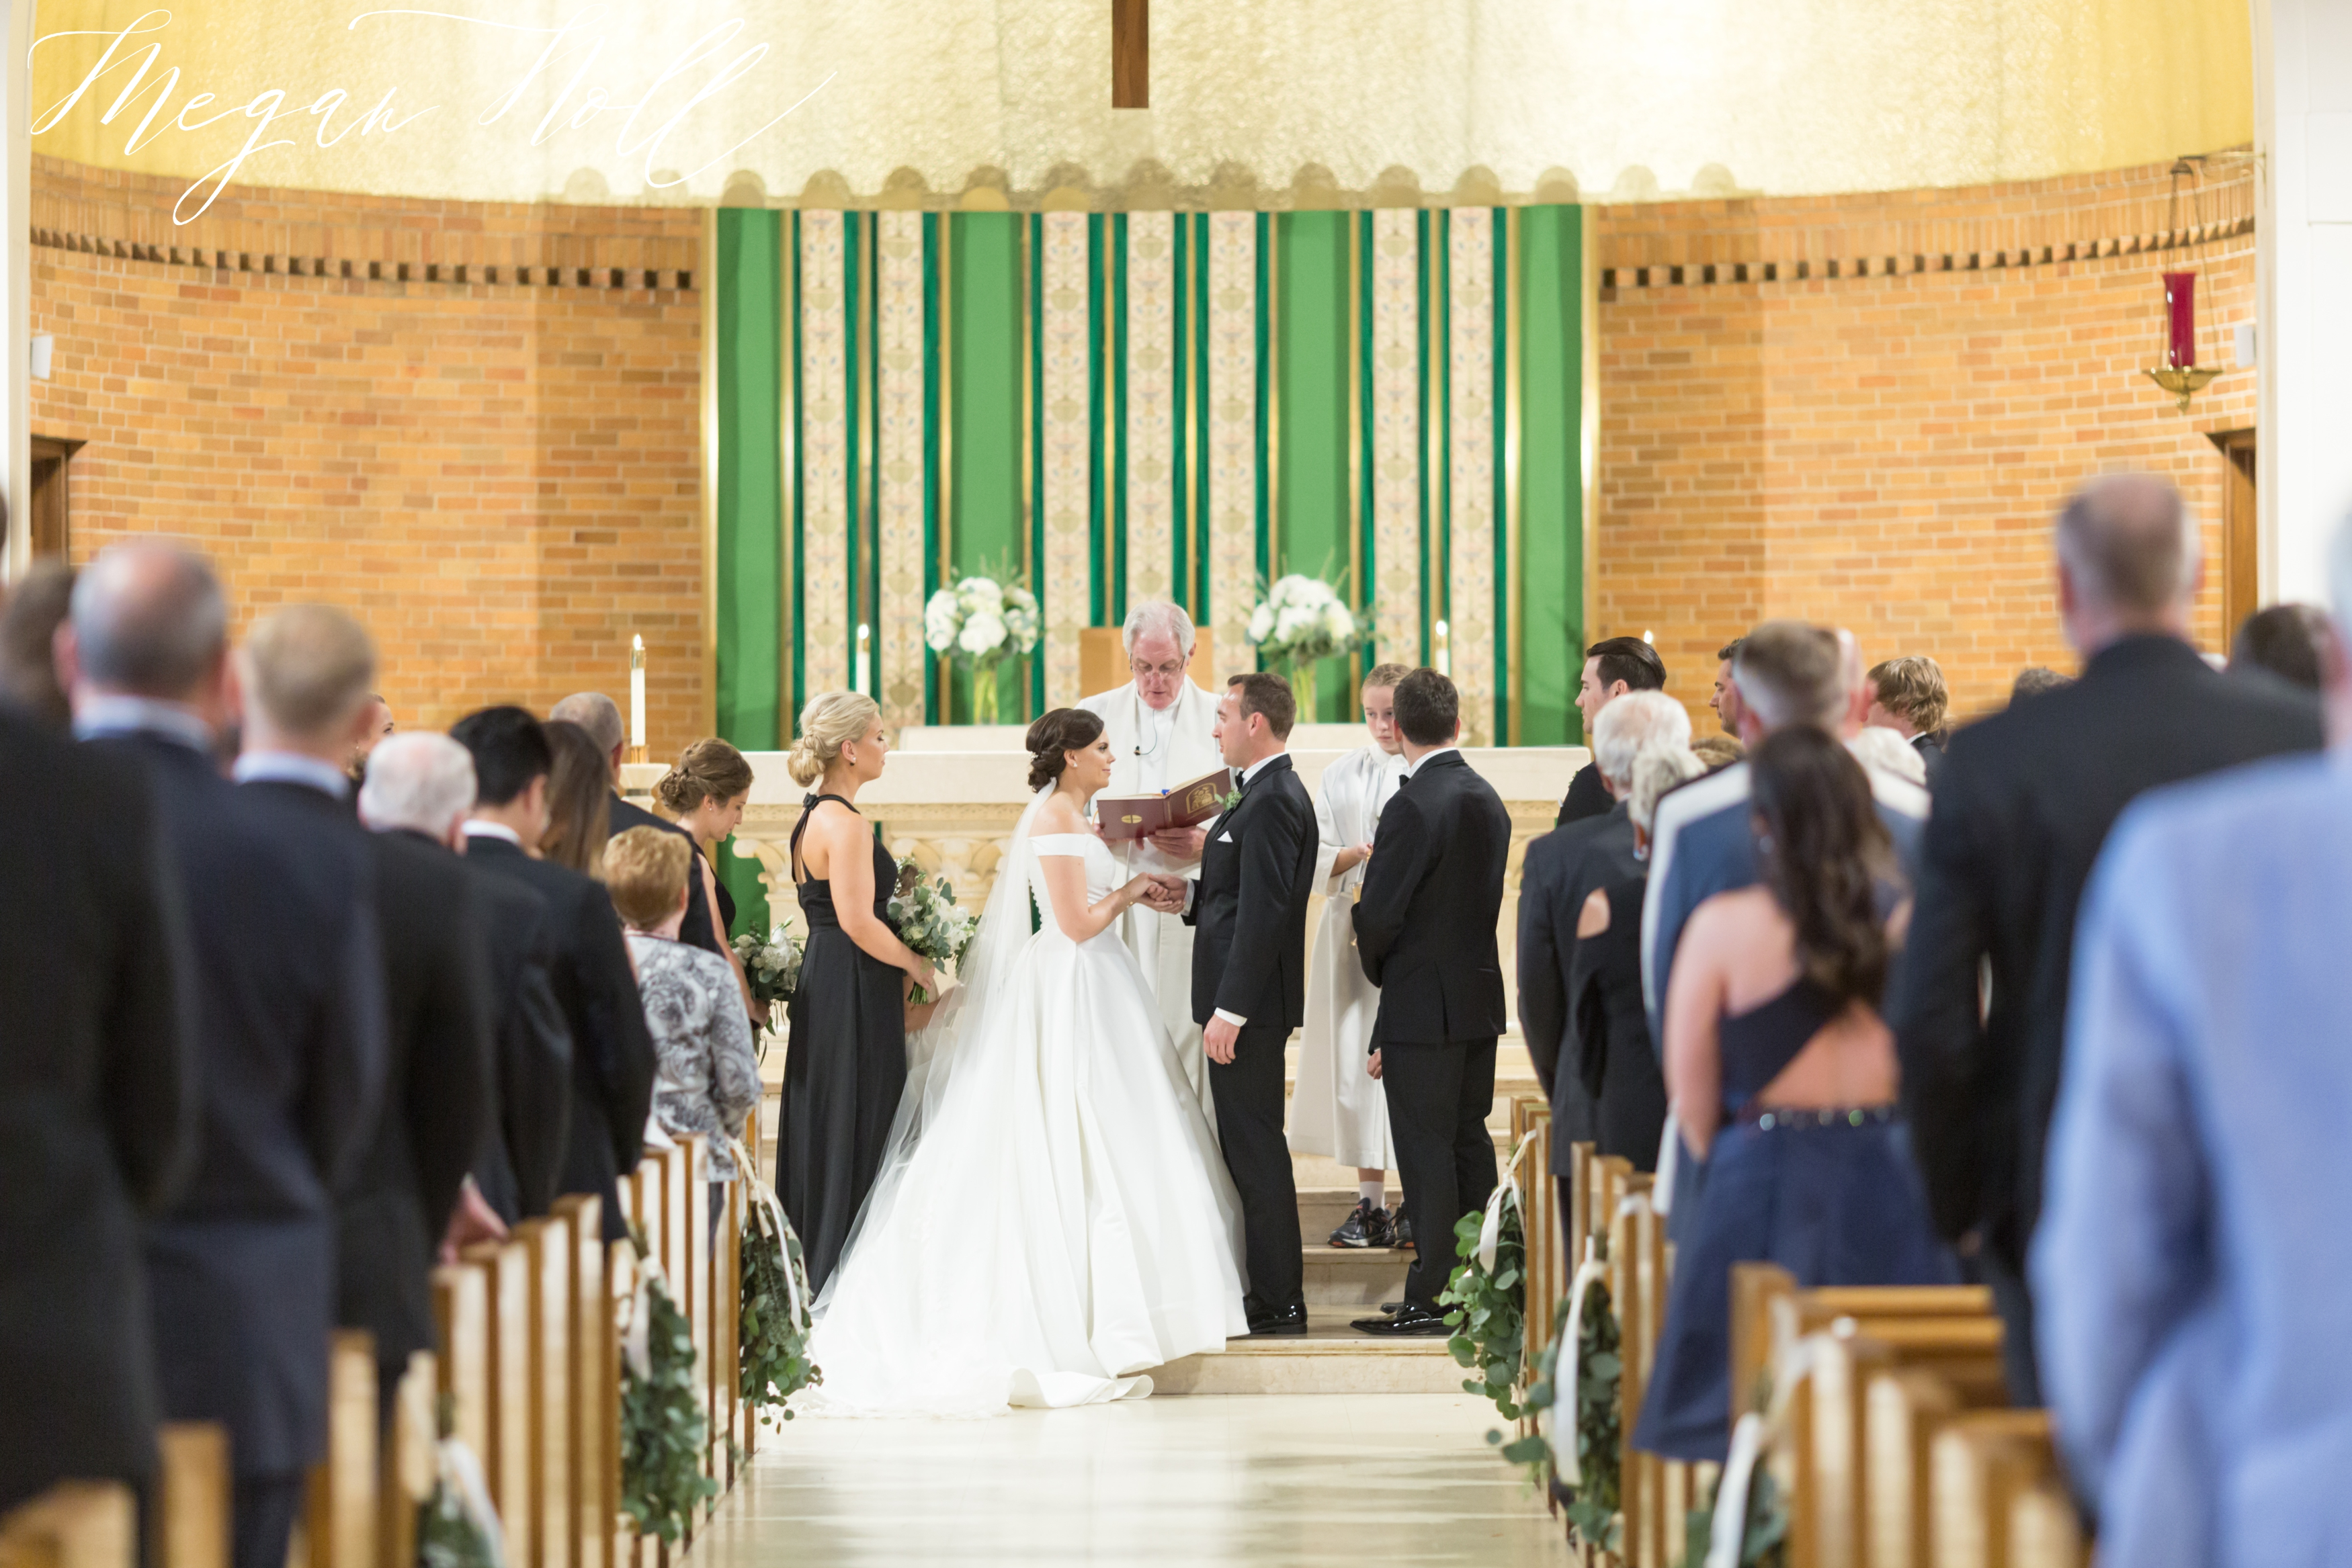 Wedding Ceremony in St. Agnes Church in Park Hills Kentucky